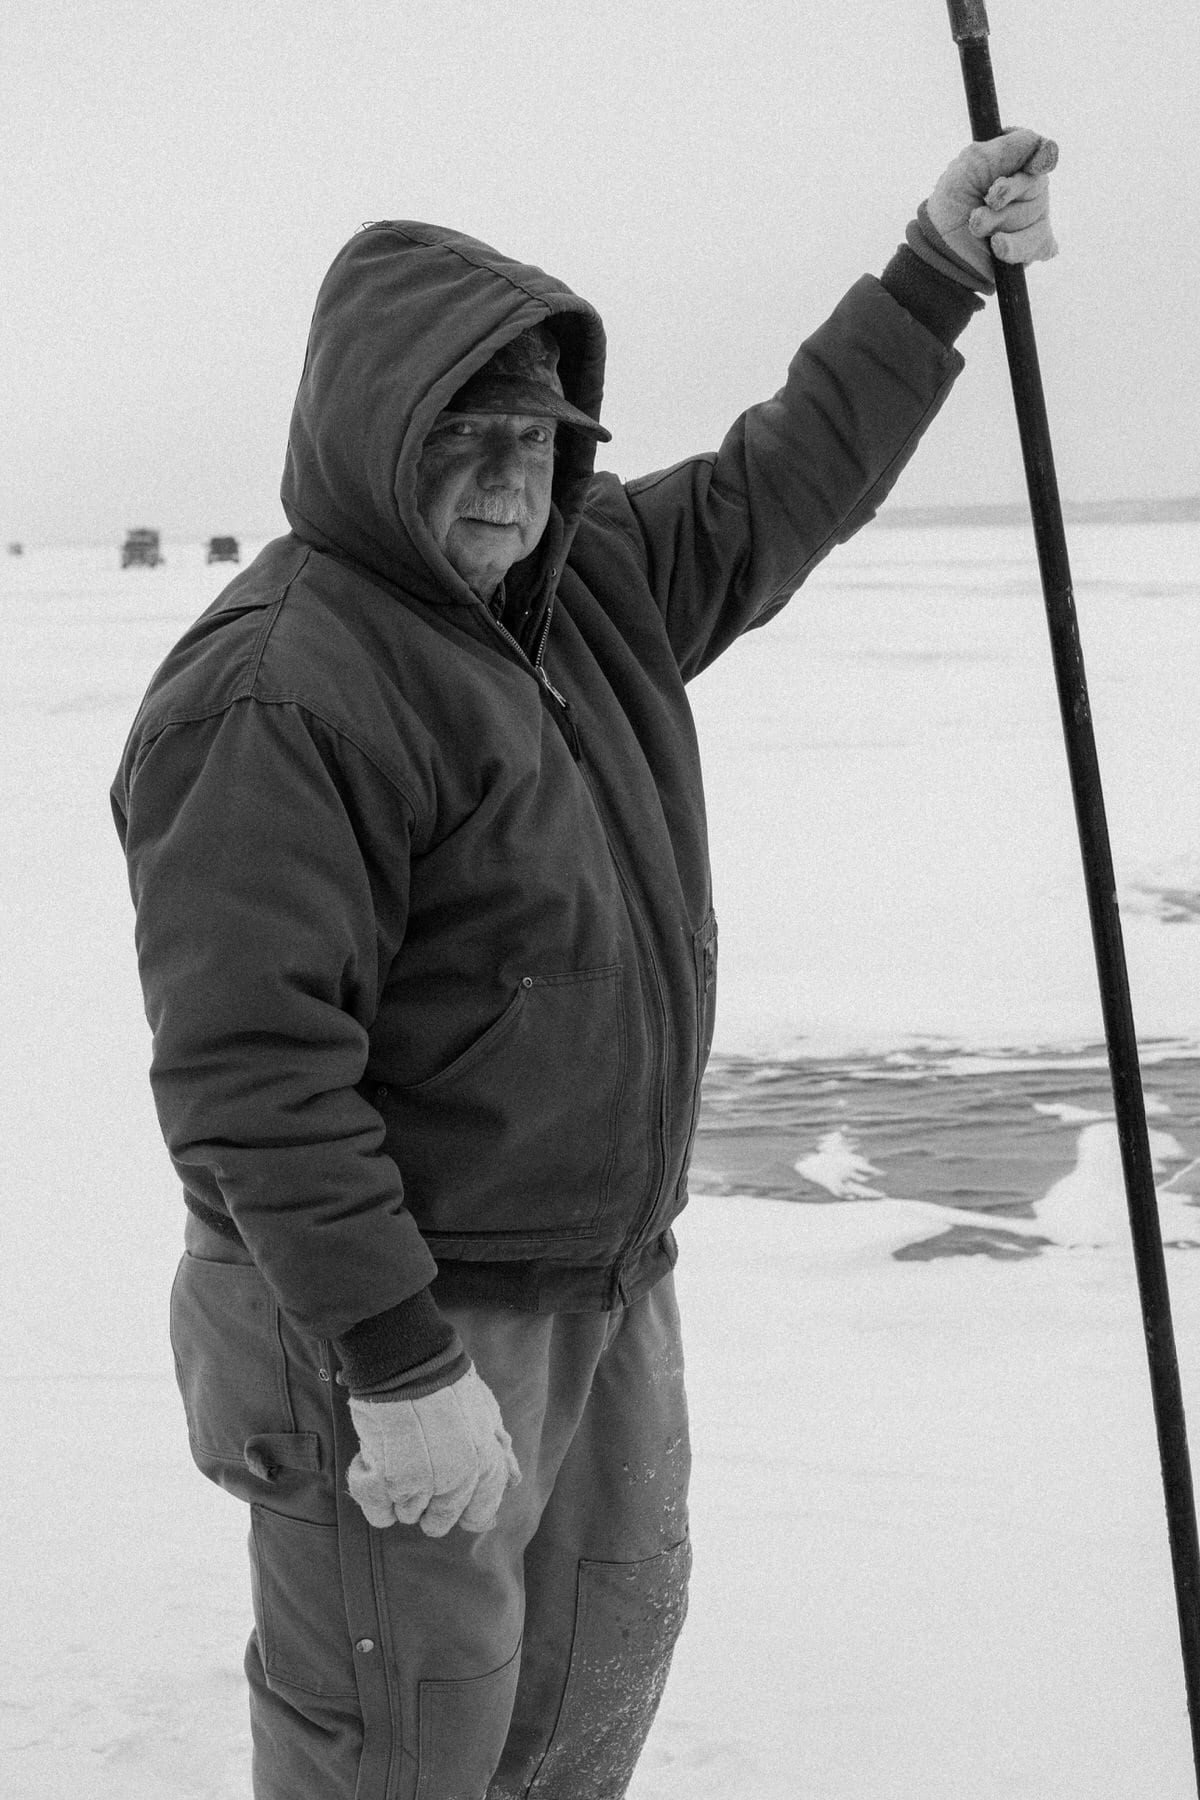 Lake-Winnebago-sturgeon-spearing-Fond-du-Lac-Wisconsin-black-and-white-fine-art-photography-by-Studio-L-photographer-Laura-Schneider-_0032